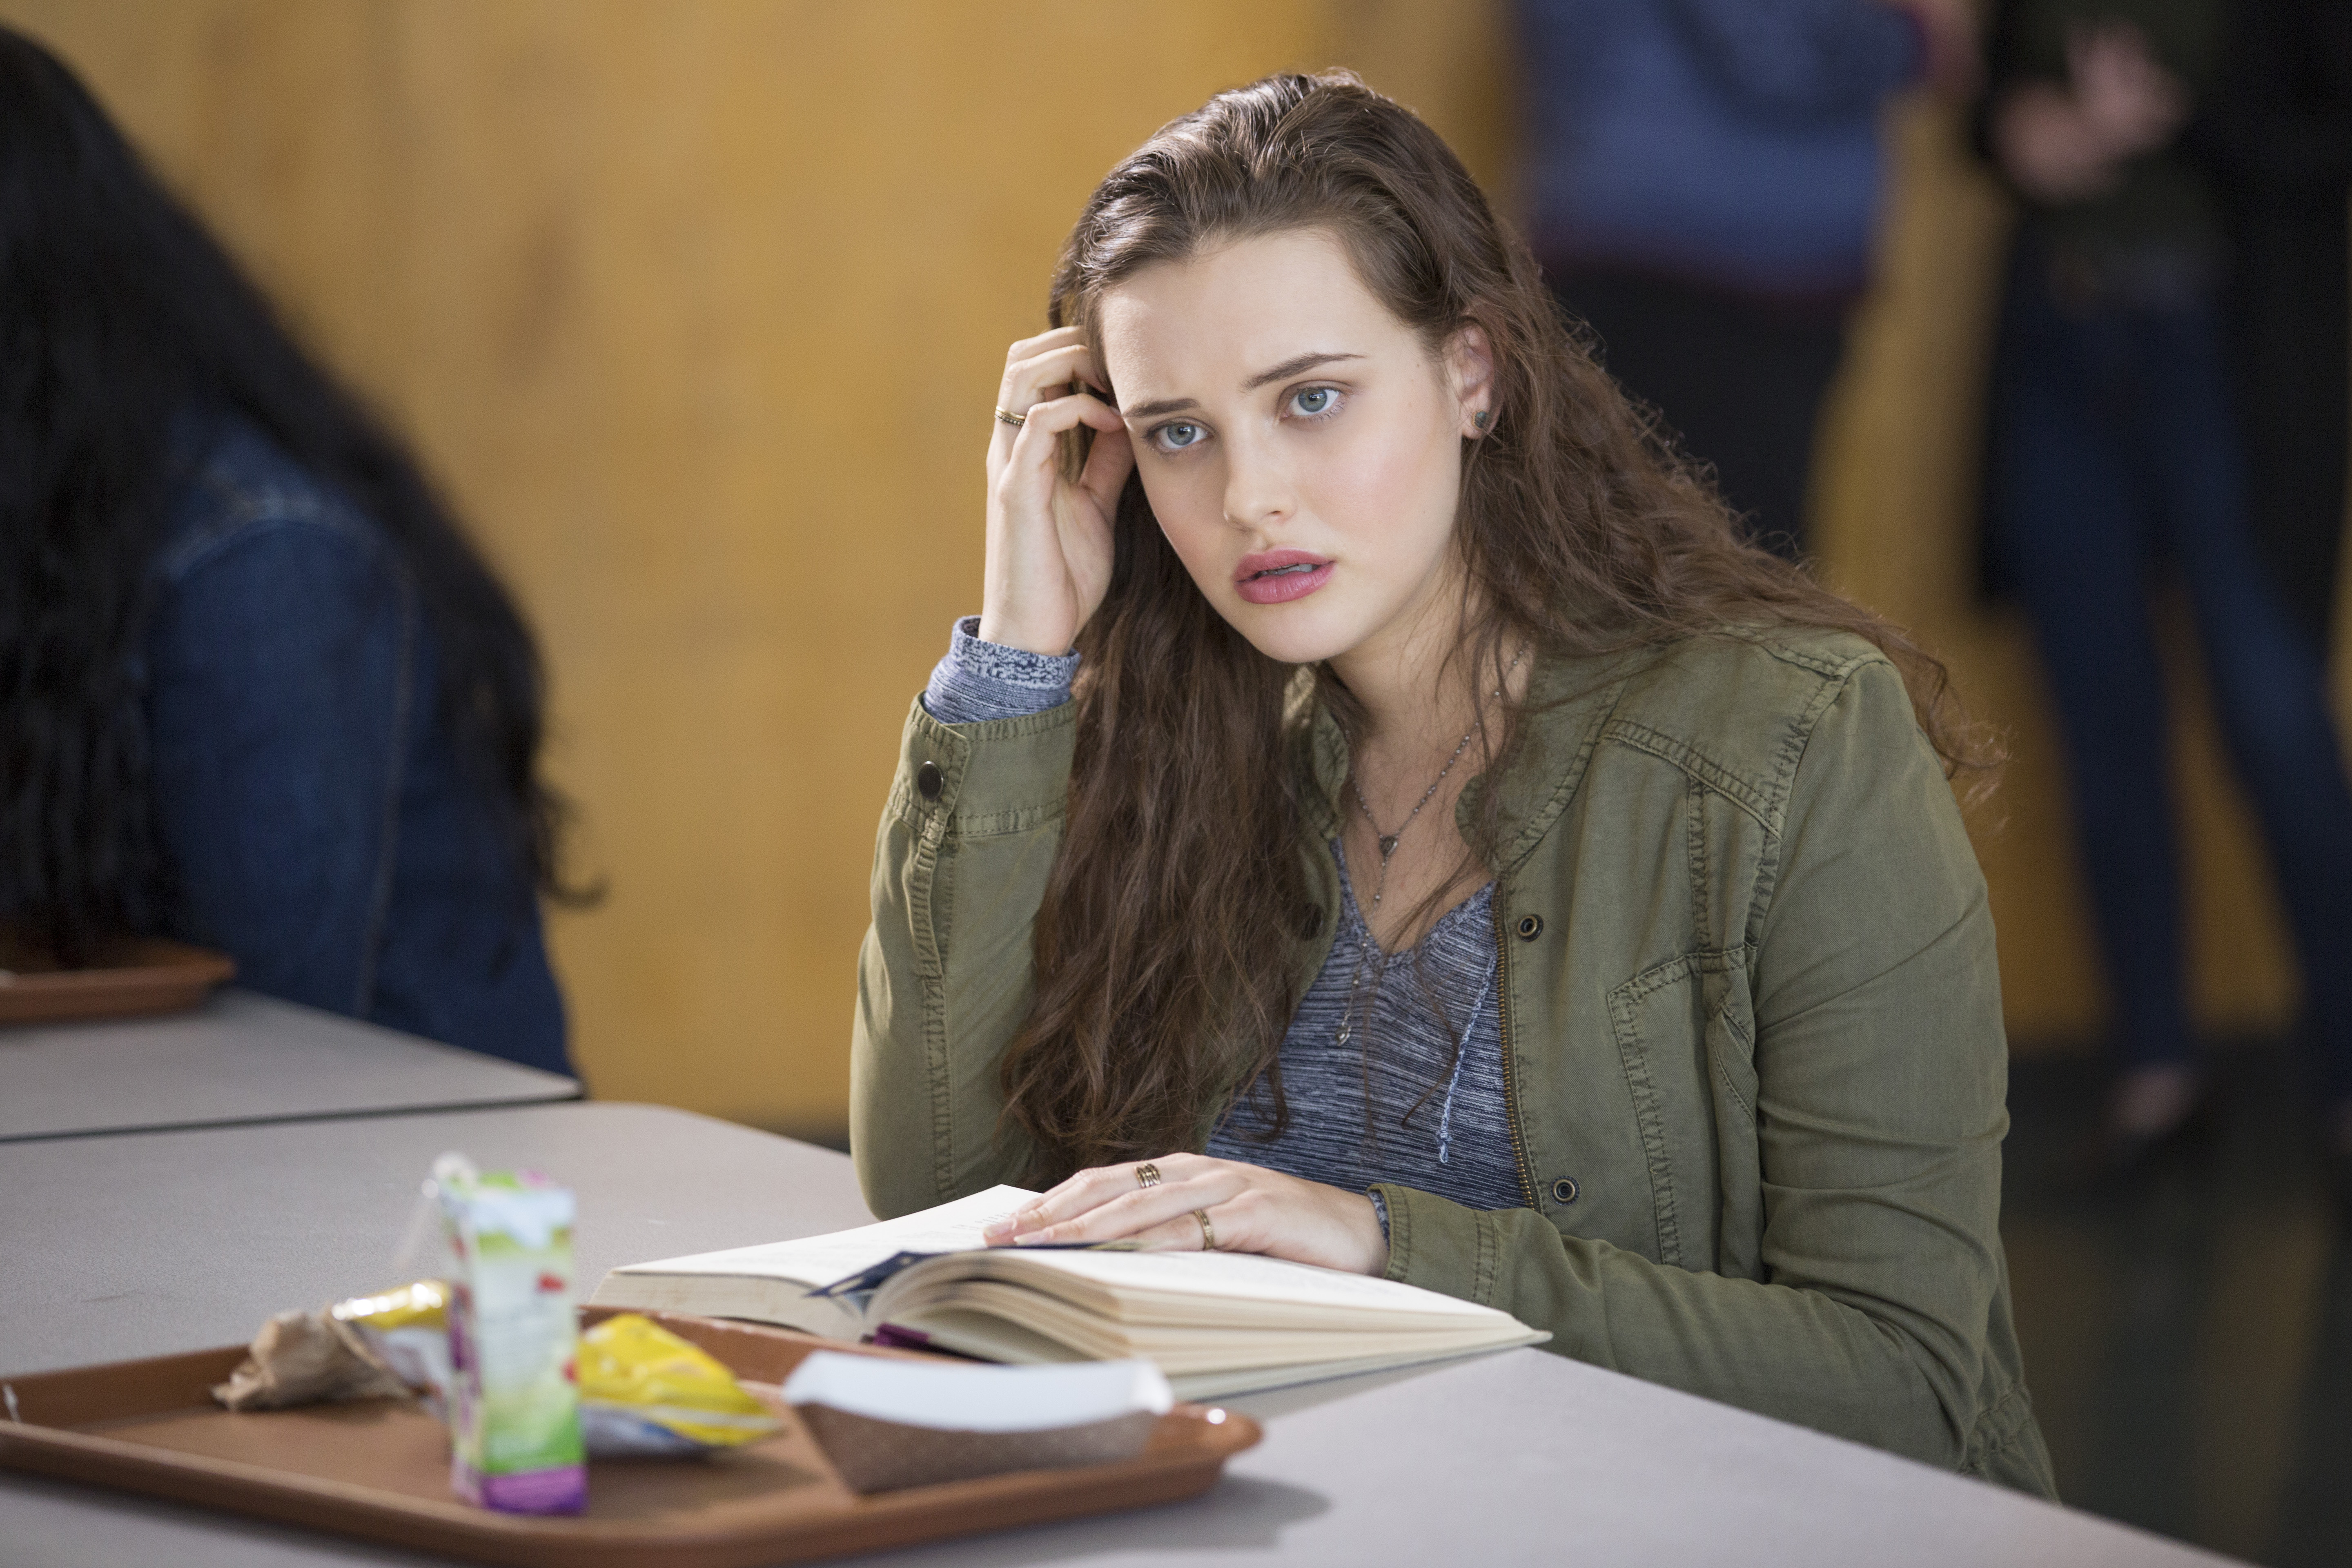 Netflix Edits Out Graphic '13 Reasons Why' Suicide Scene After Two Years of Backlash